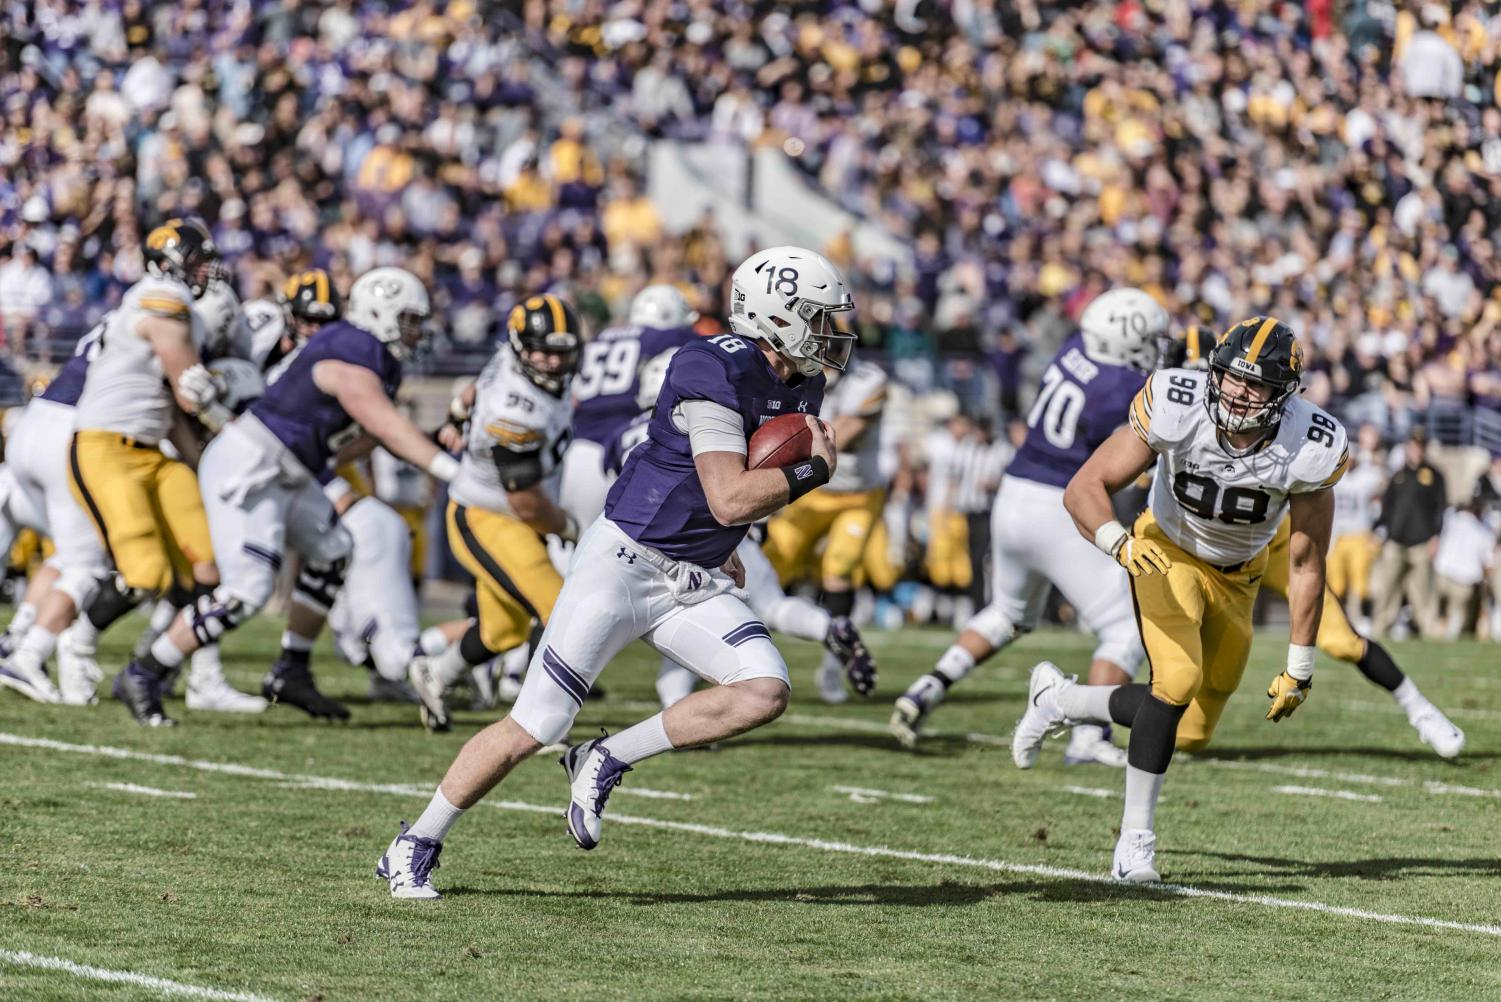 Clayton Thorson runs with the football. The junior quarterback passed for 192 yards against the Hawkeyes.